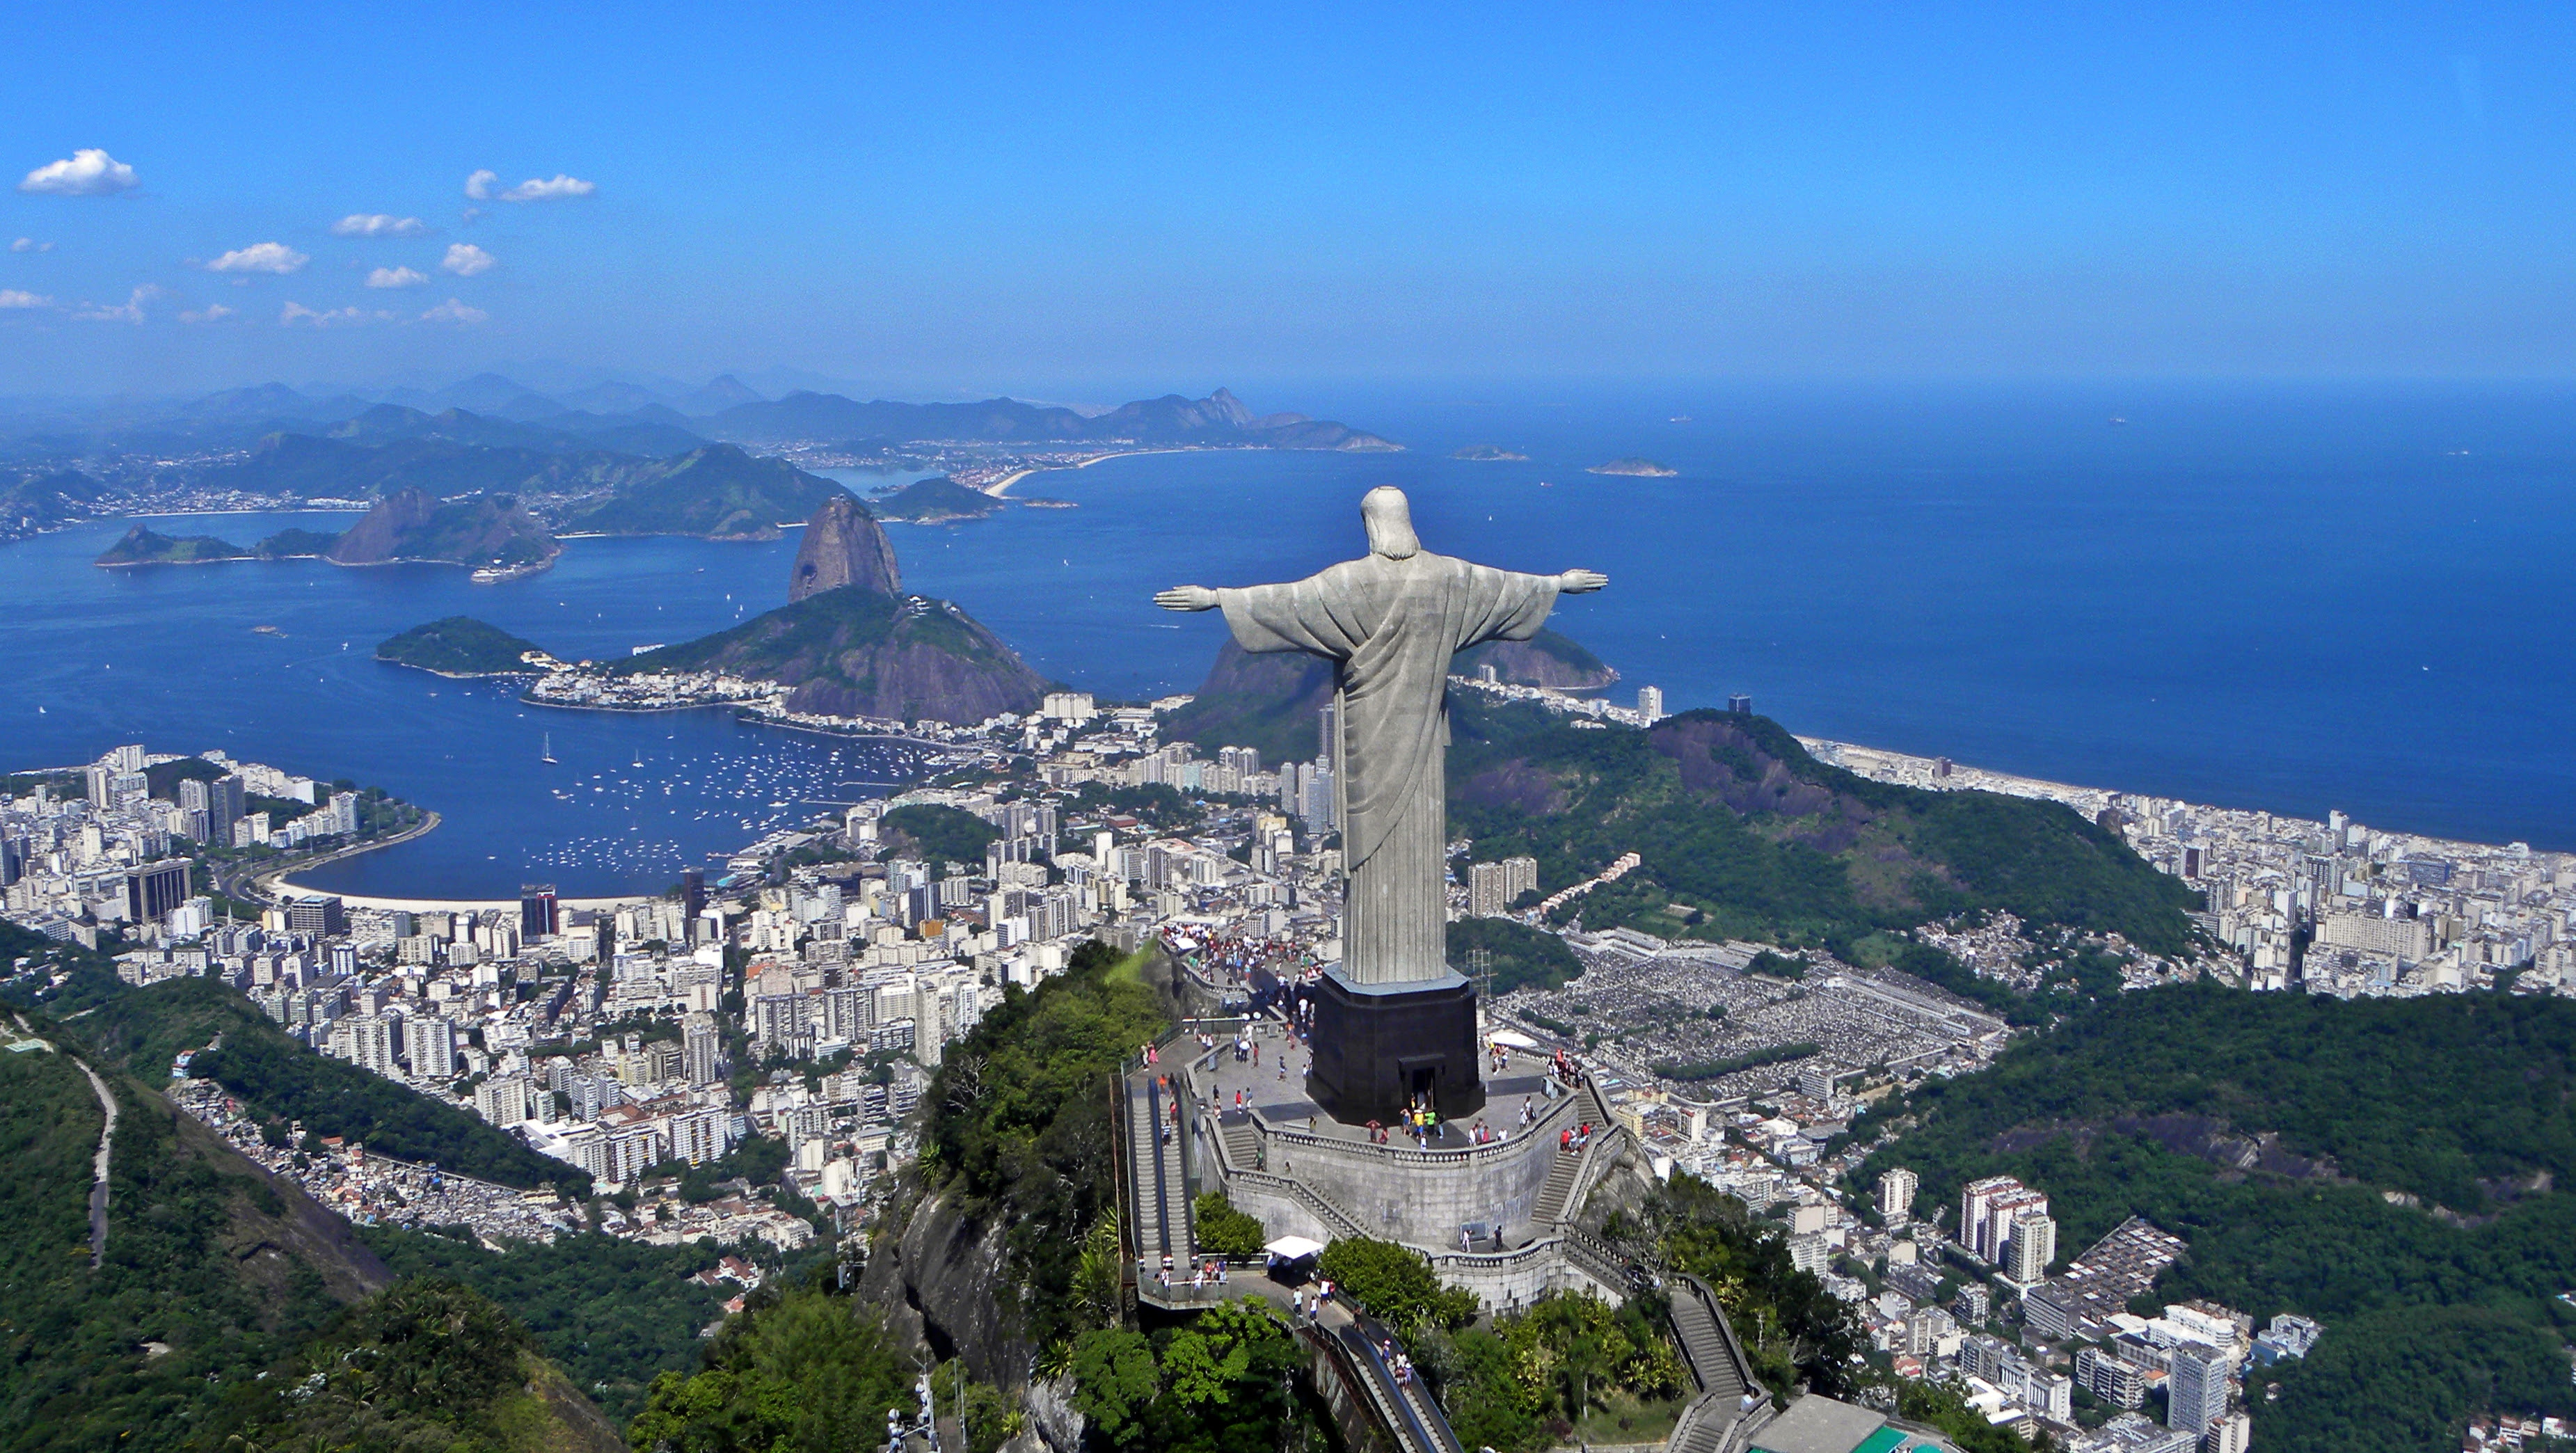 http://upload.wikimedia.org/wikipedia/commons/a/ae/Christ_on_Corcovado_mountain.JPG